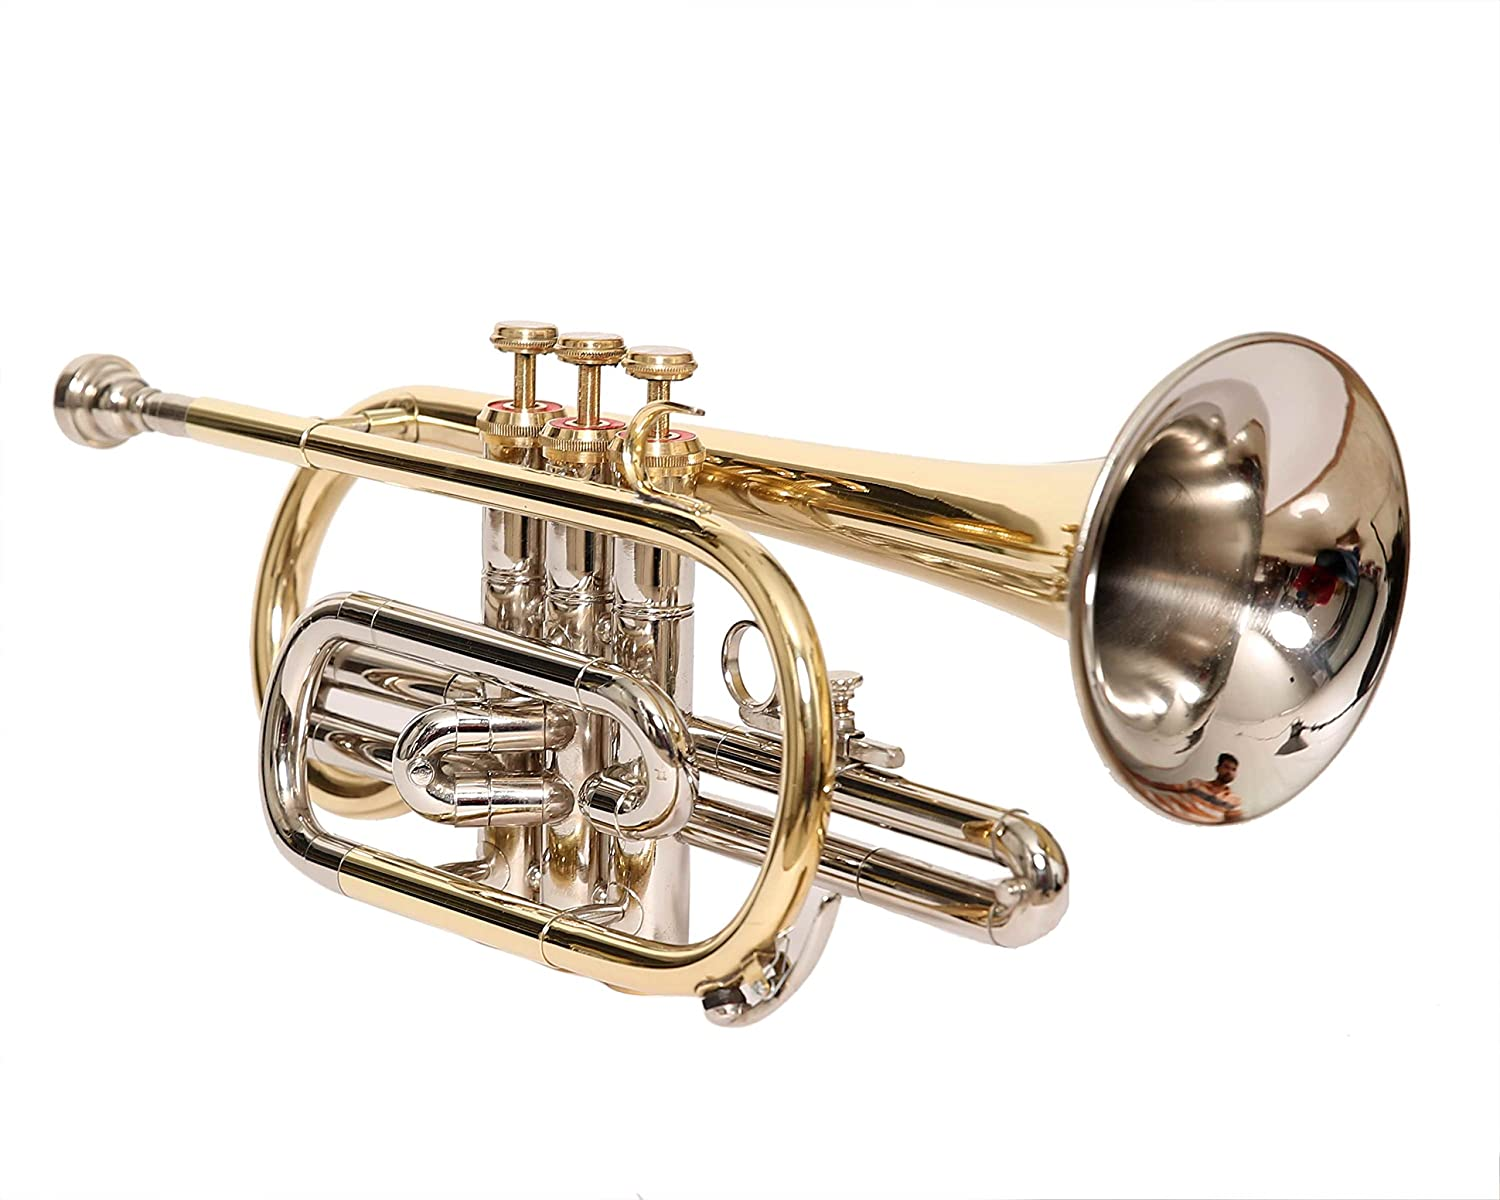 NASIR ALI CORNET Bb PITCH BRASS + NICKEL SILVER WITH FREE CASE AND MOUTHPIECE NASIR ALI & CO